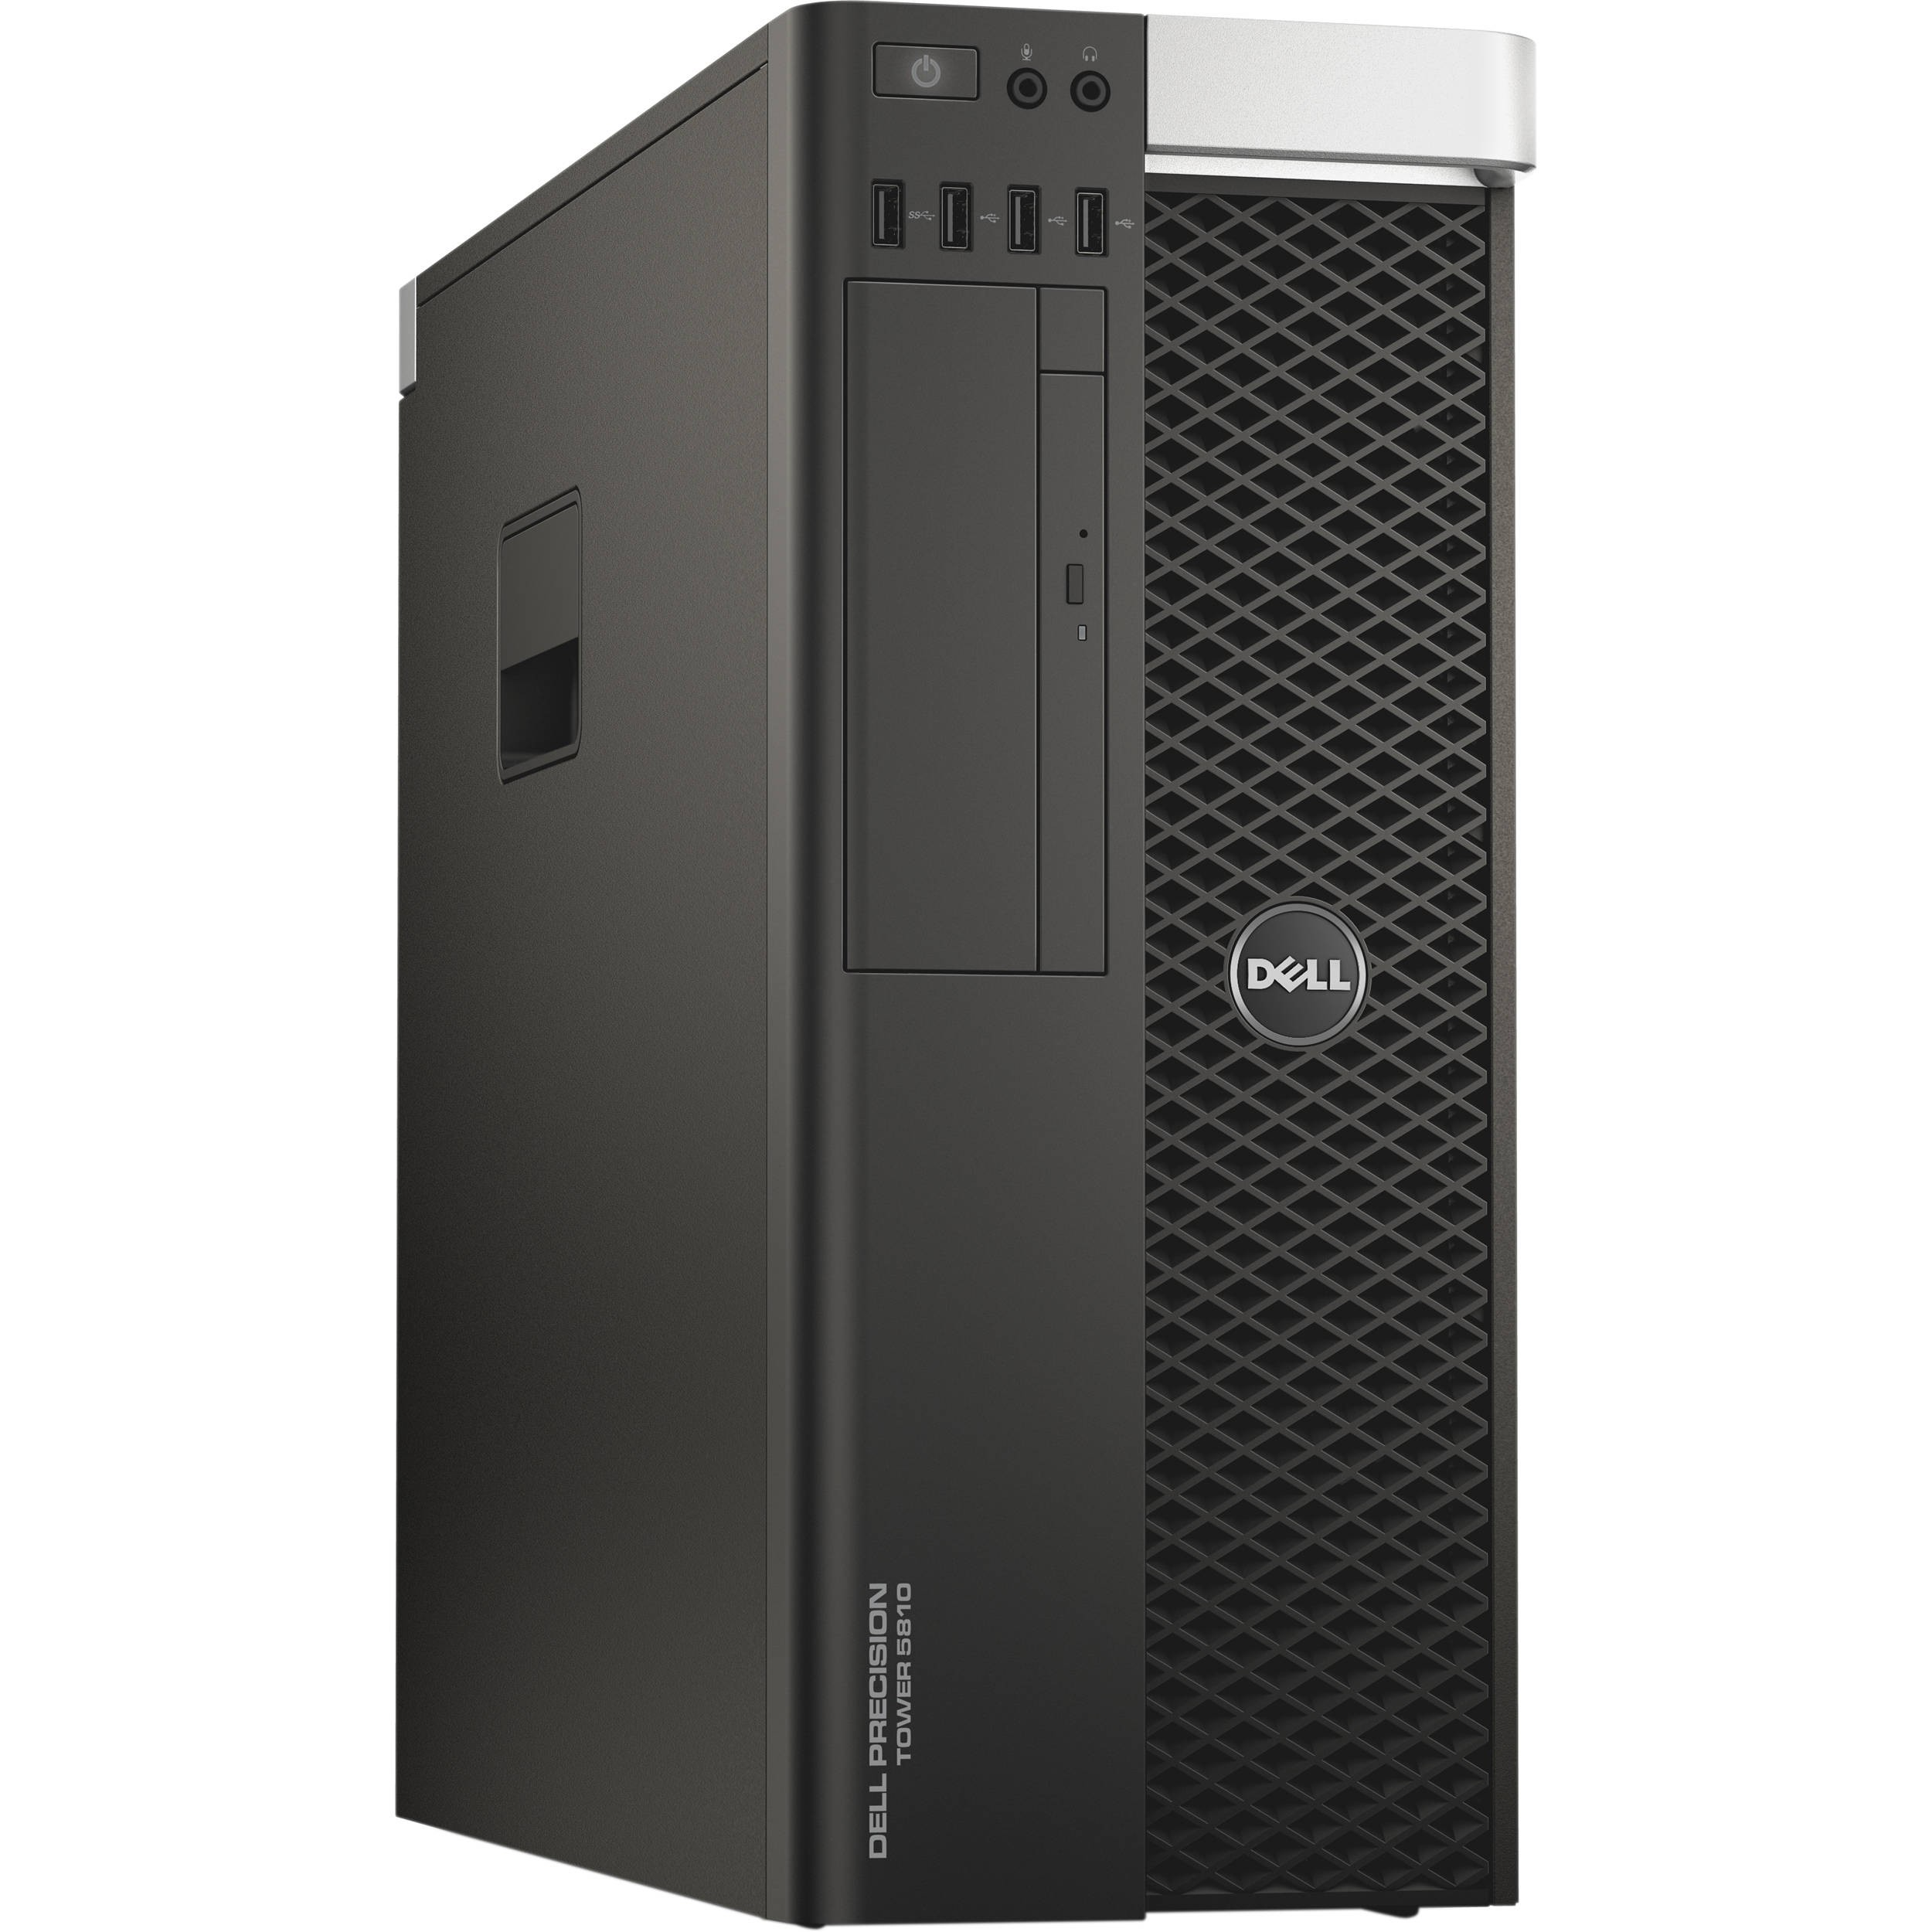 DELL PRECISION T1500 NVIDIA NVS295 GRAPHICS TREIBER WINDOWS 8